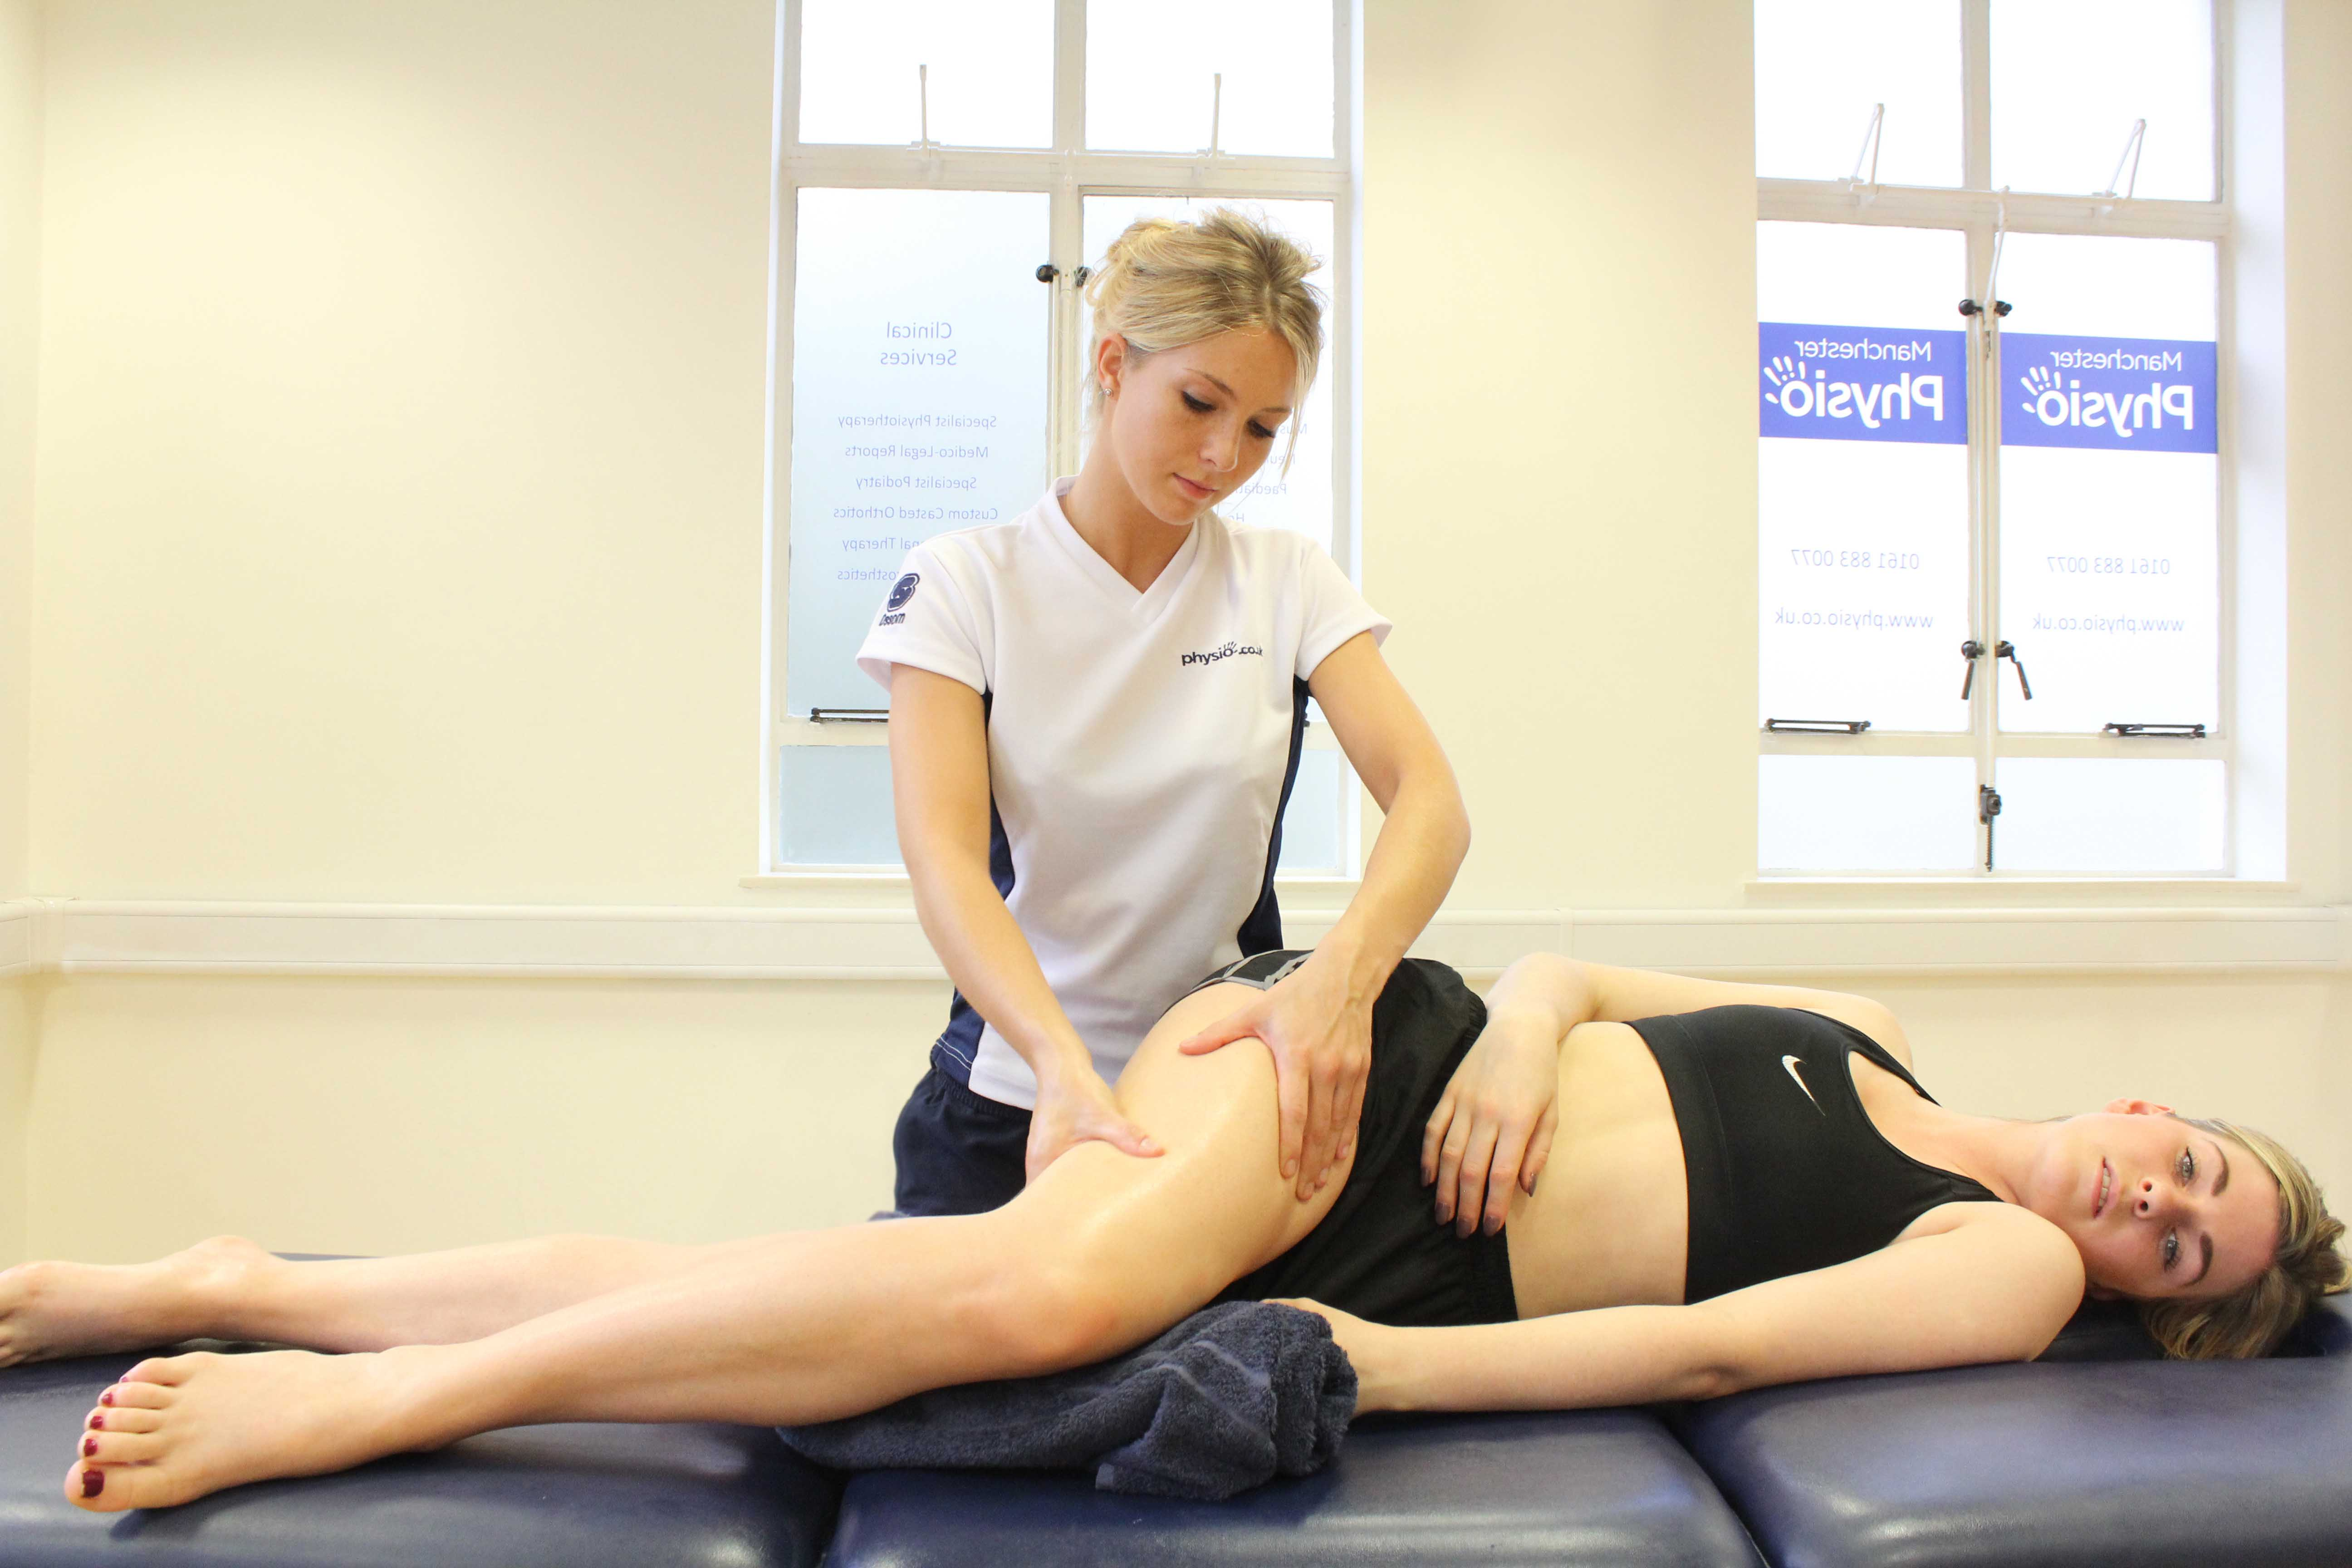 Soft tissue massage of the vastus lataralis